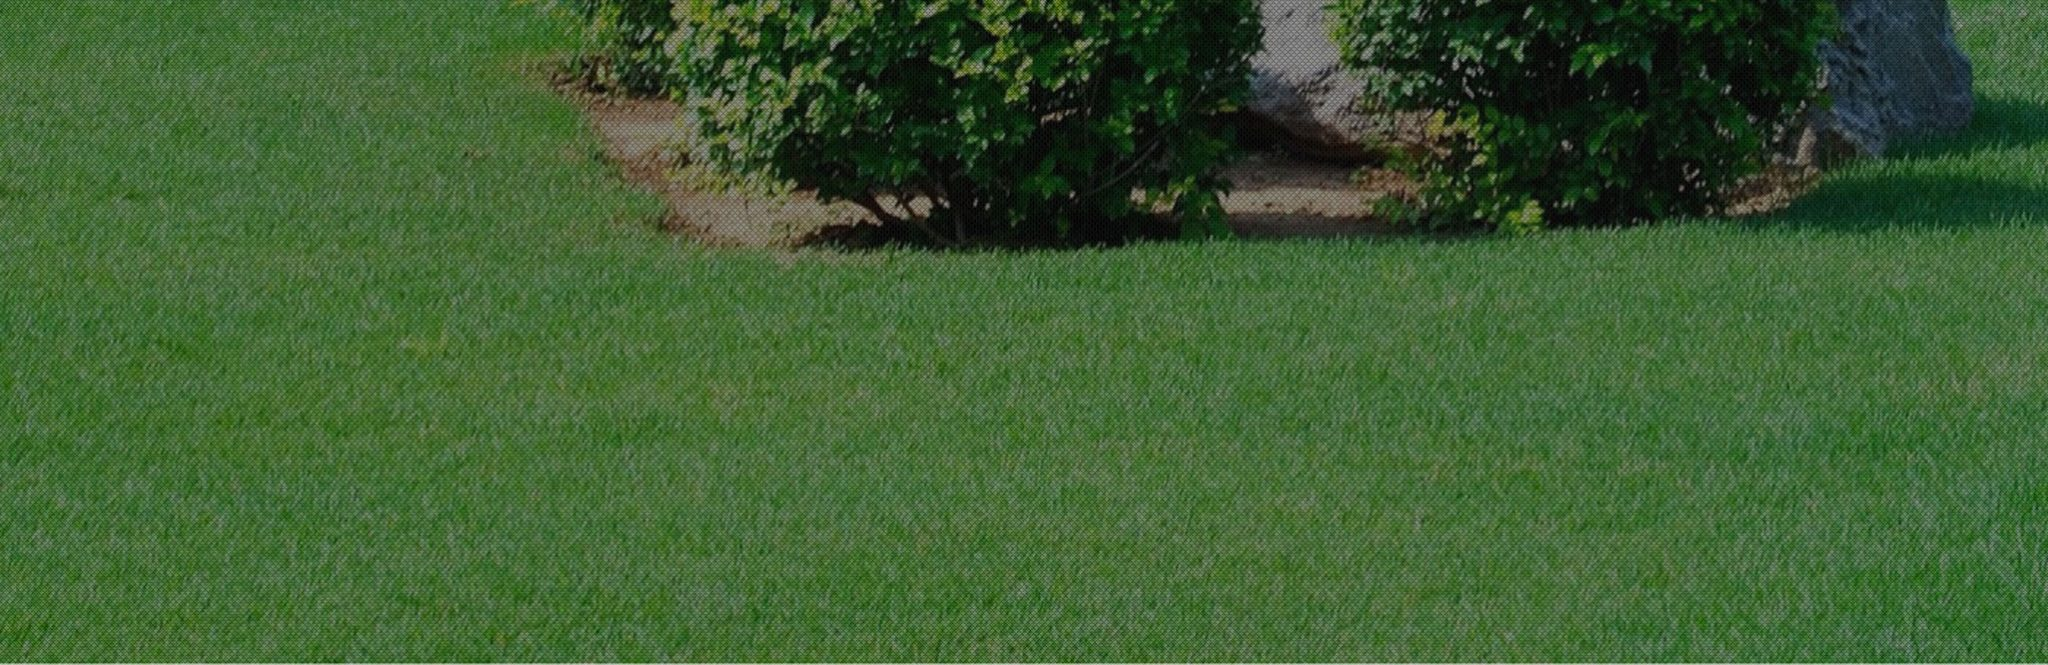 Landscaping Waco Tx Lawn Care And Sprinkler Services